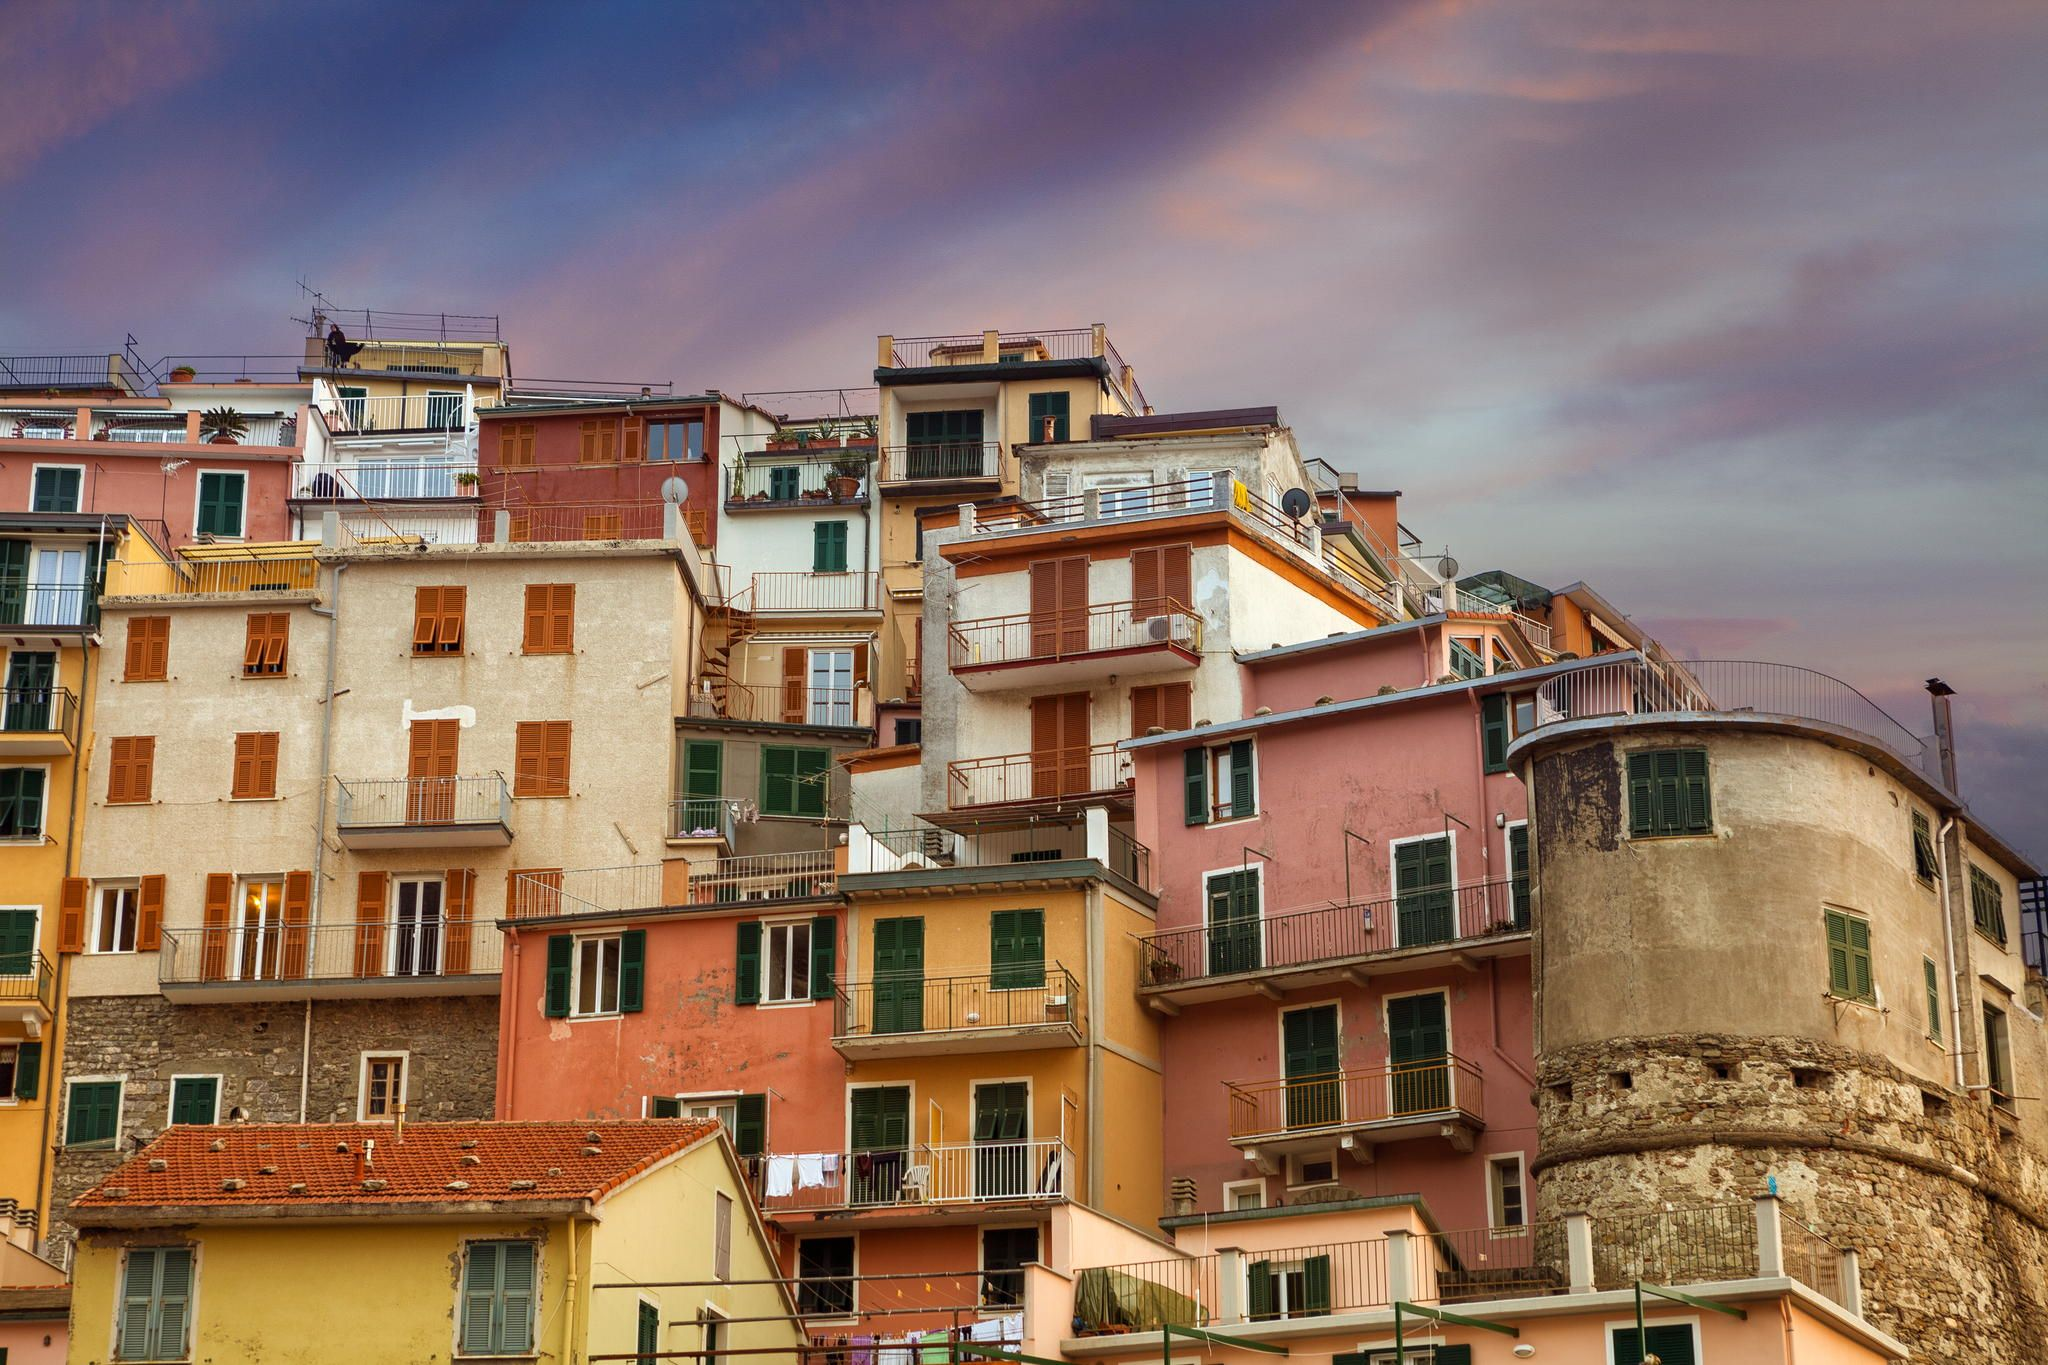 Photograph An Evening in Manarola by peter stewart on 500px